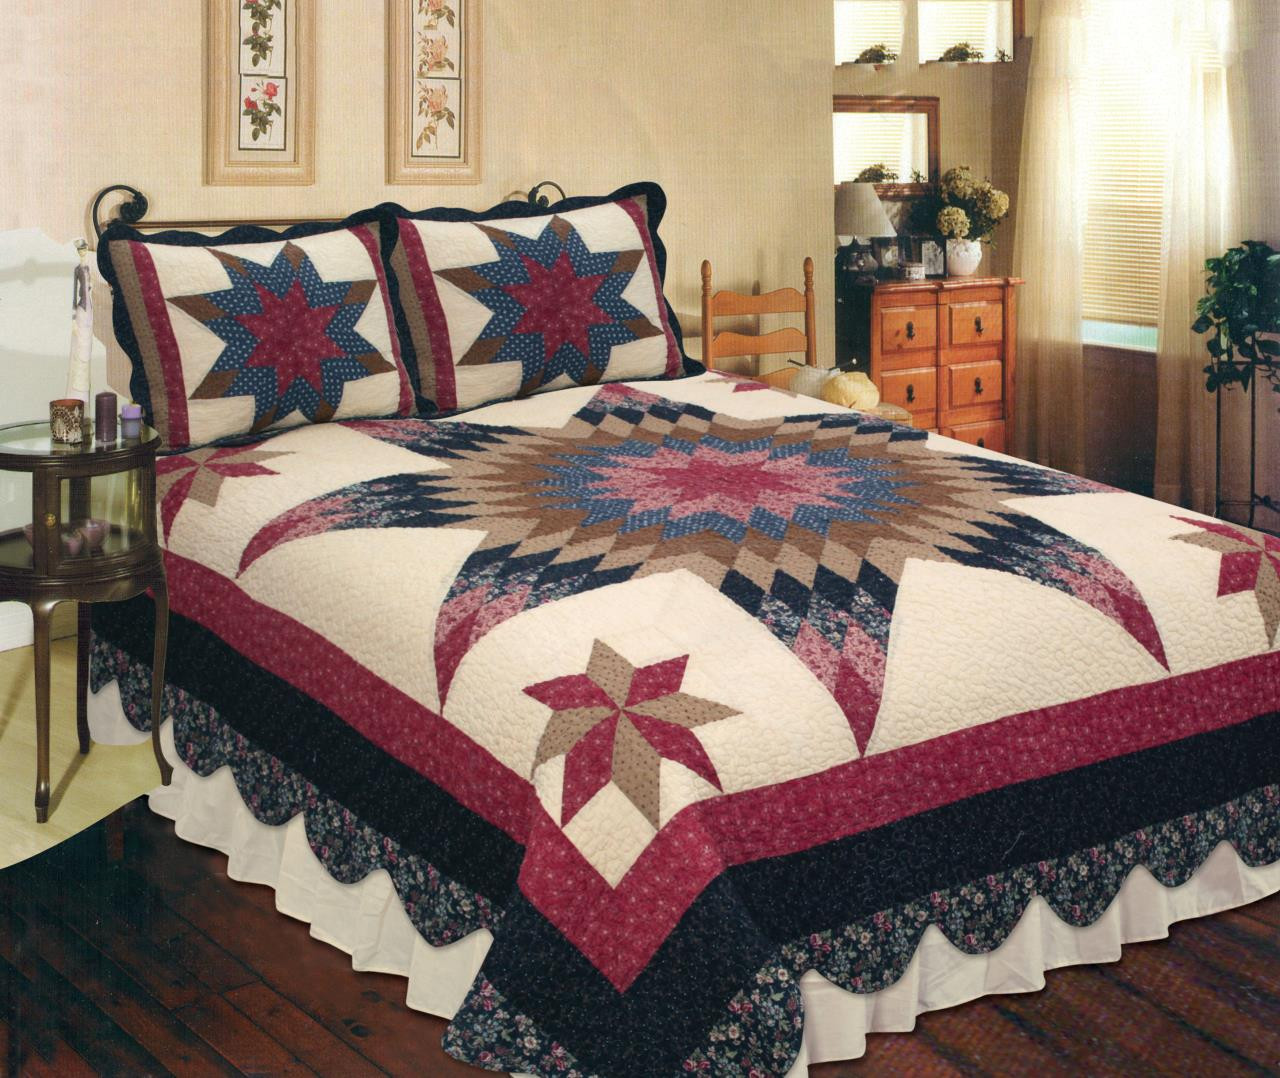 Prairie Star Quilt Collection By Elegant Decor Paul S Home Fashions